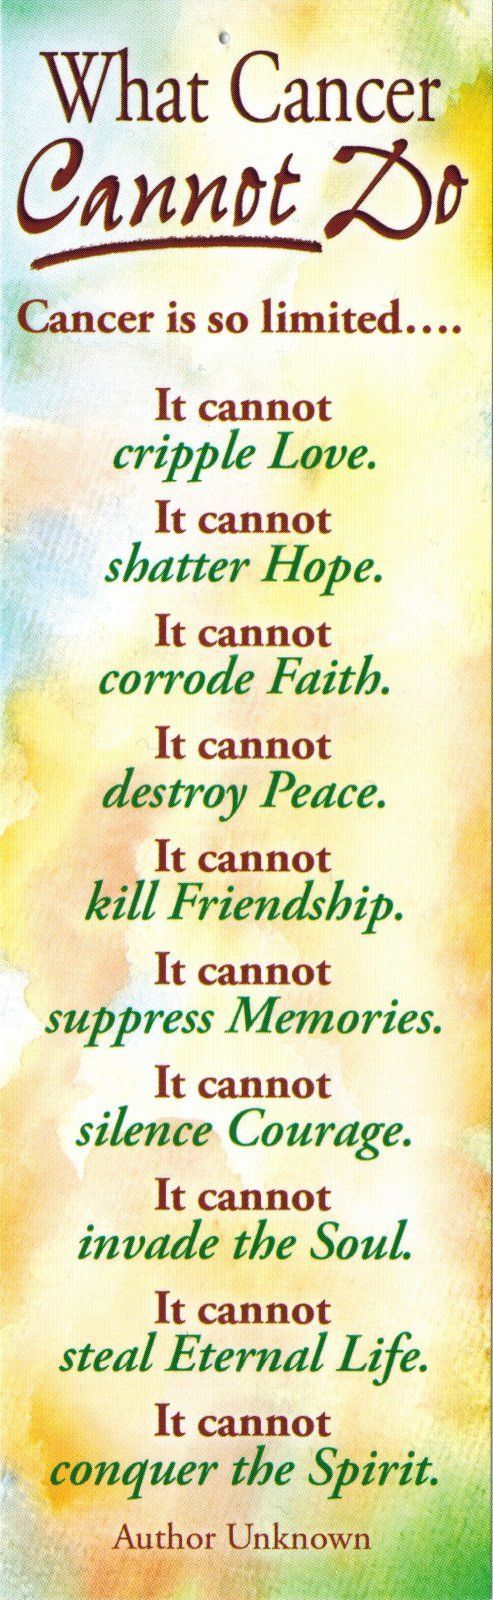 What Cancer Cannot Do Health Wellness Cancer Quotes Lung